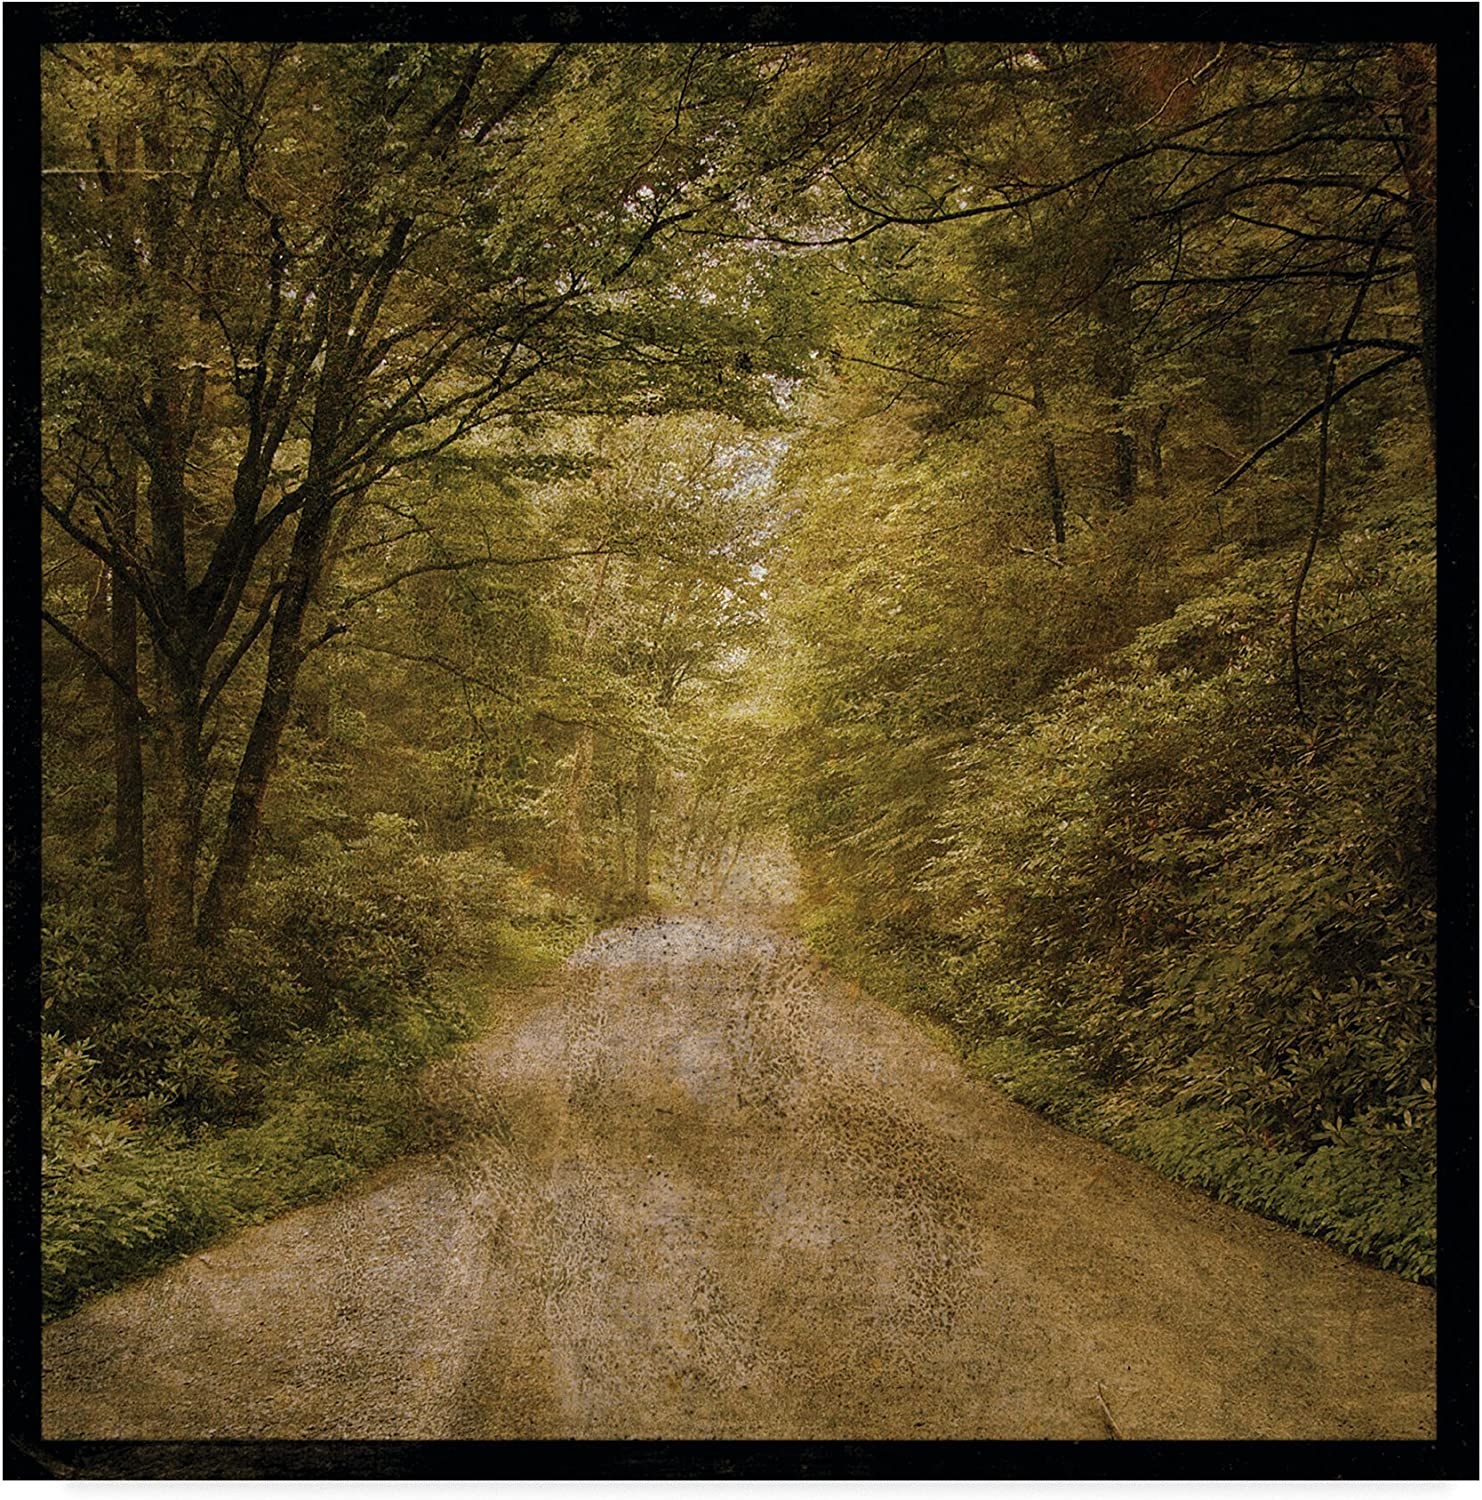 Flannery Fork Road by John W. golden, 14x14-Inch